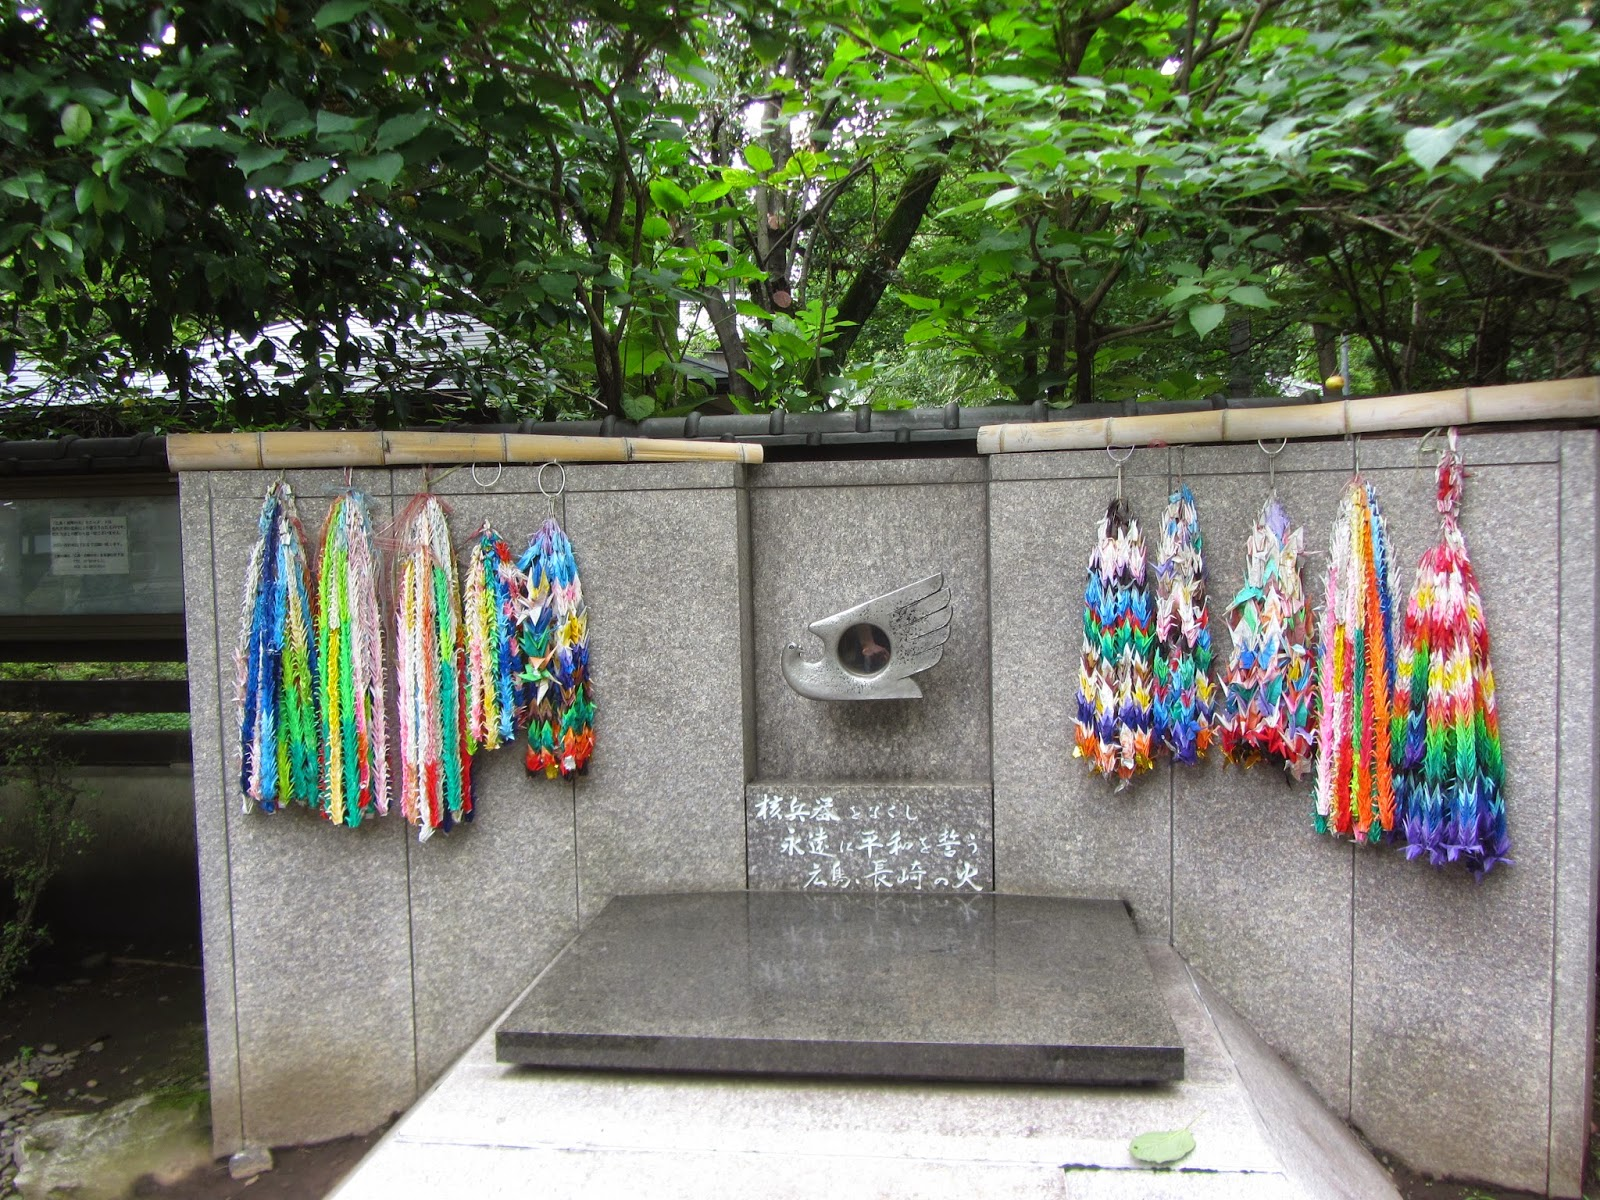 Brian angela anderson family those colorful things hanging at the memorial are all origami cranes birds heres a more closeup photo of them jeuxipadfo Image collections